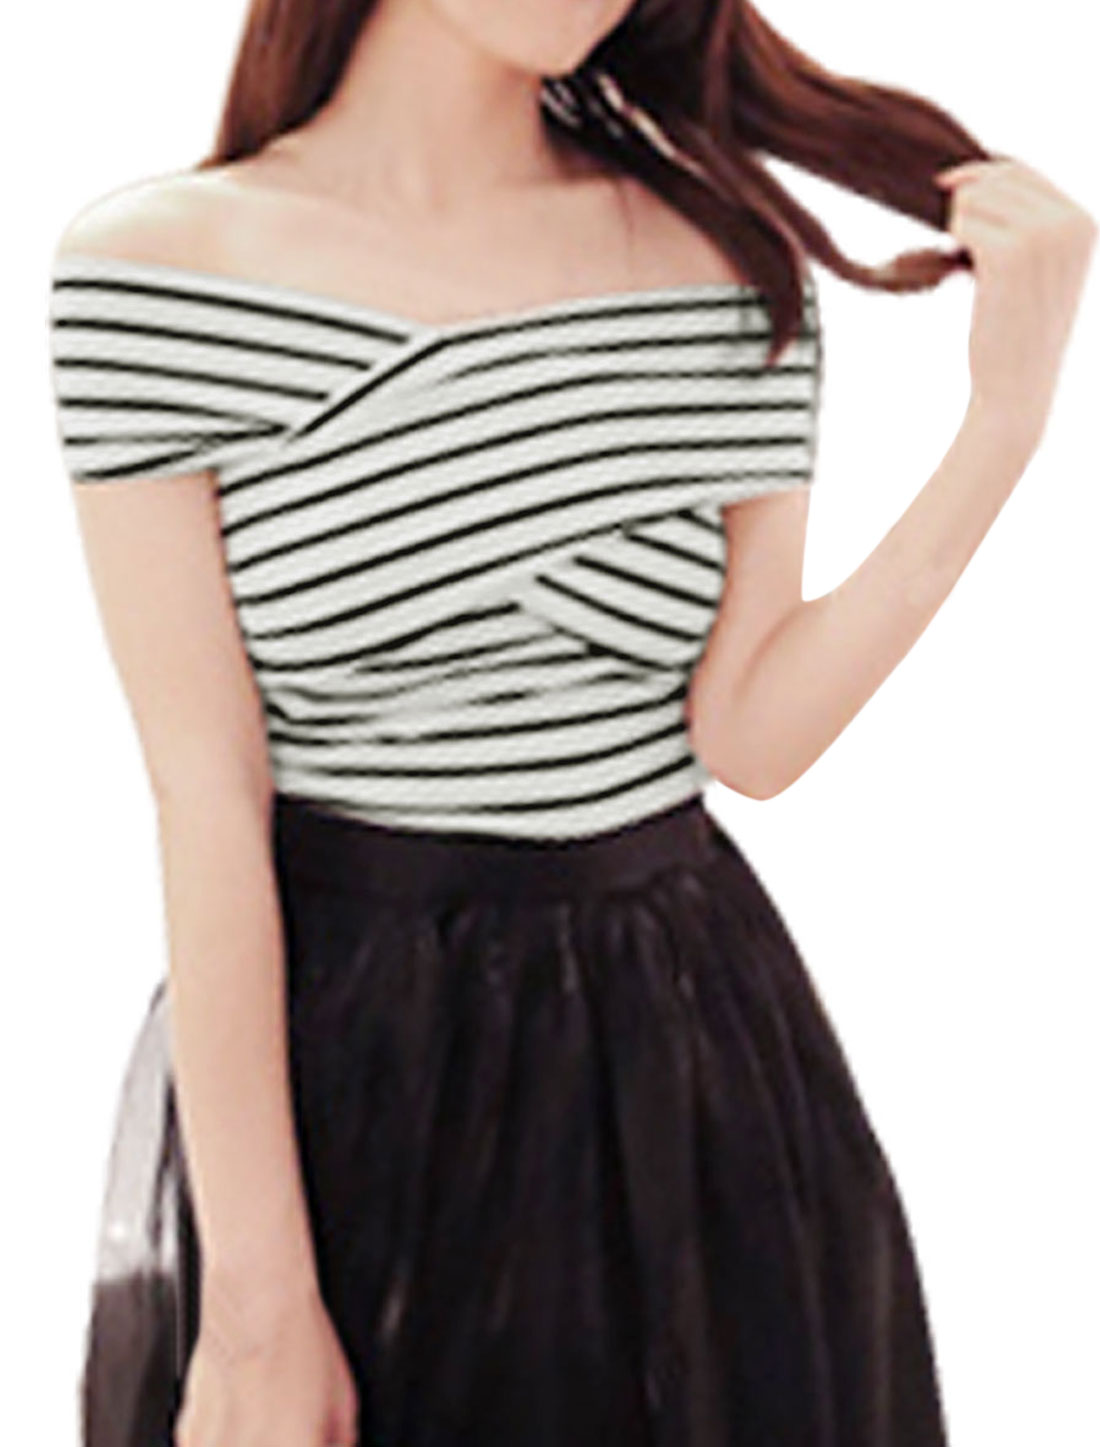 Lady Stripes Pattern Crossover Chest Design Slim Fit Top White Black XS